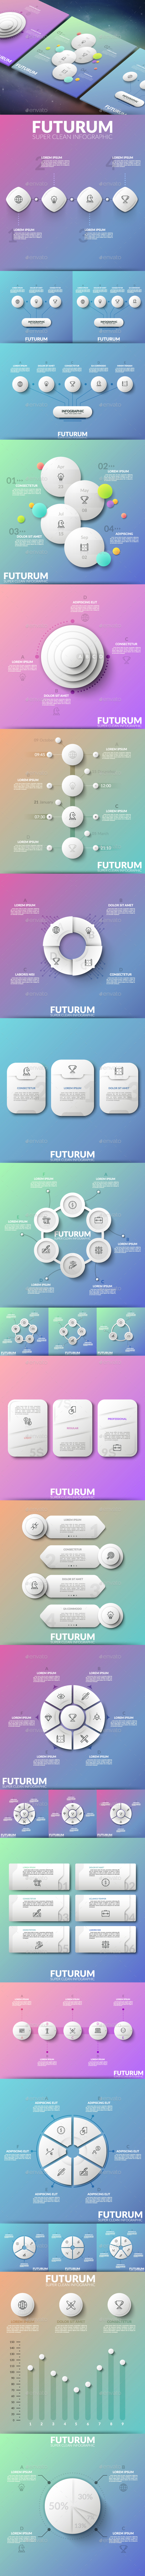 White Futurum Infographic - Infographics